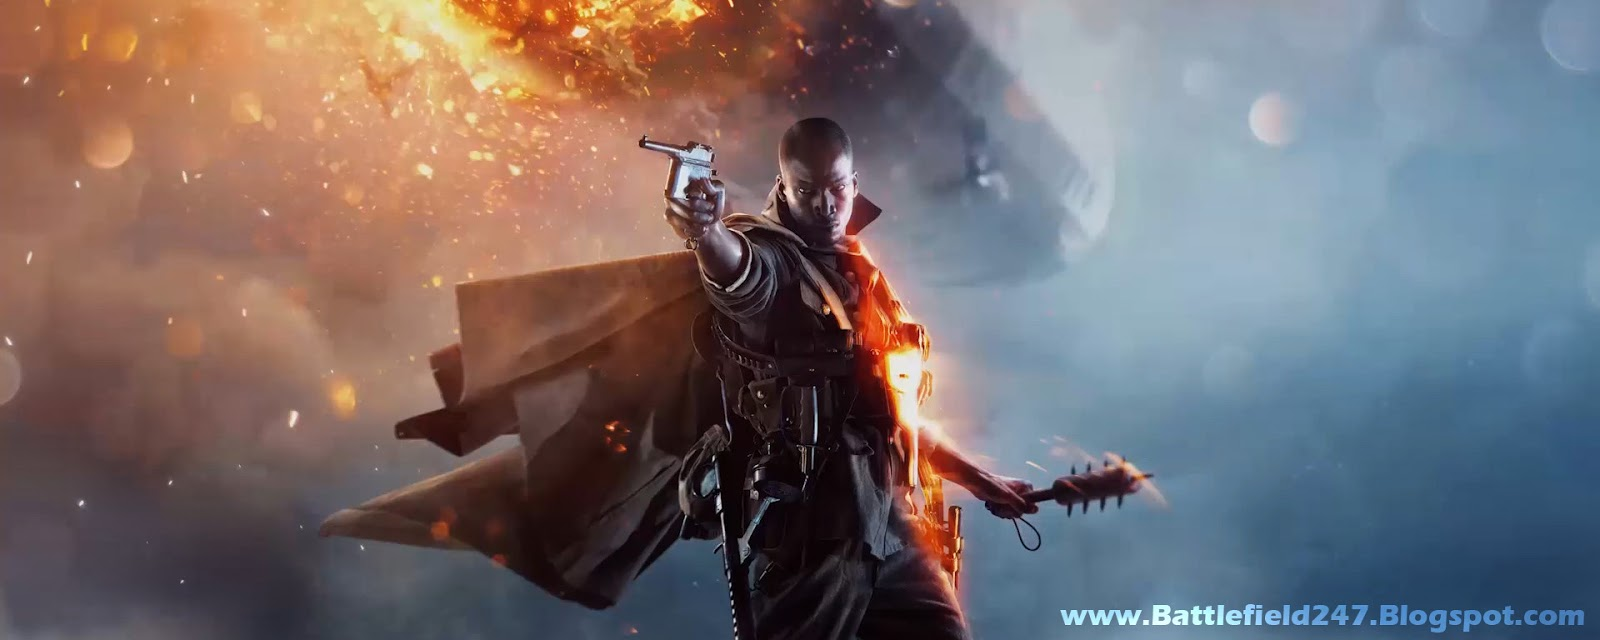 battlefield 1 wallpapers 20 - photo #15